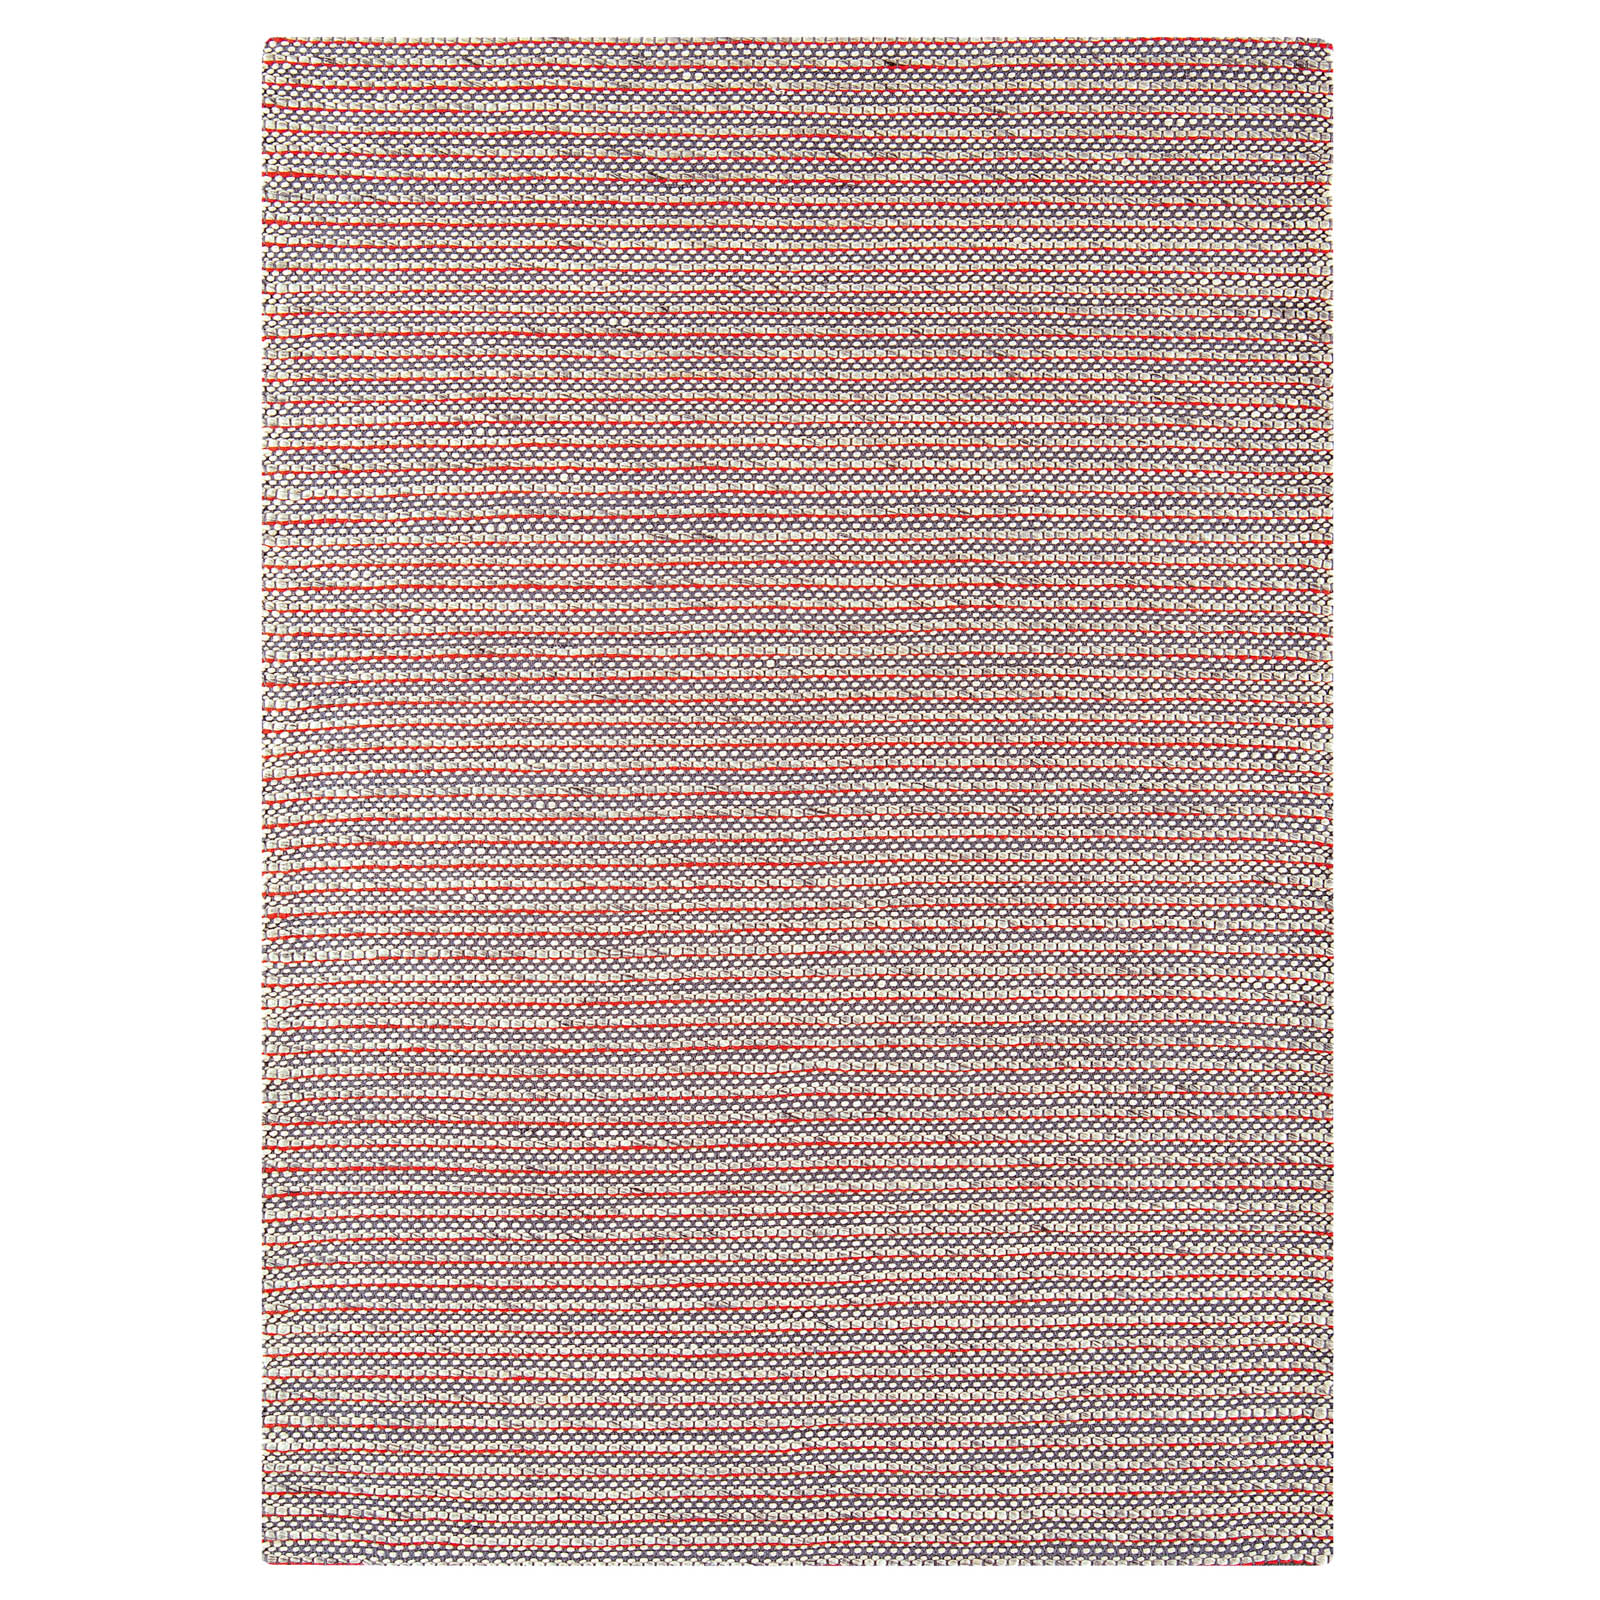 Linden Rugs in Red